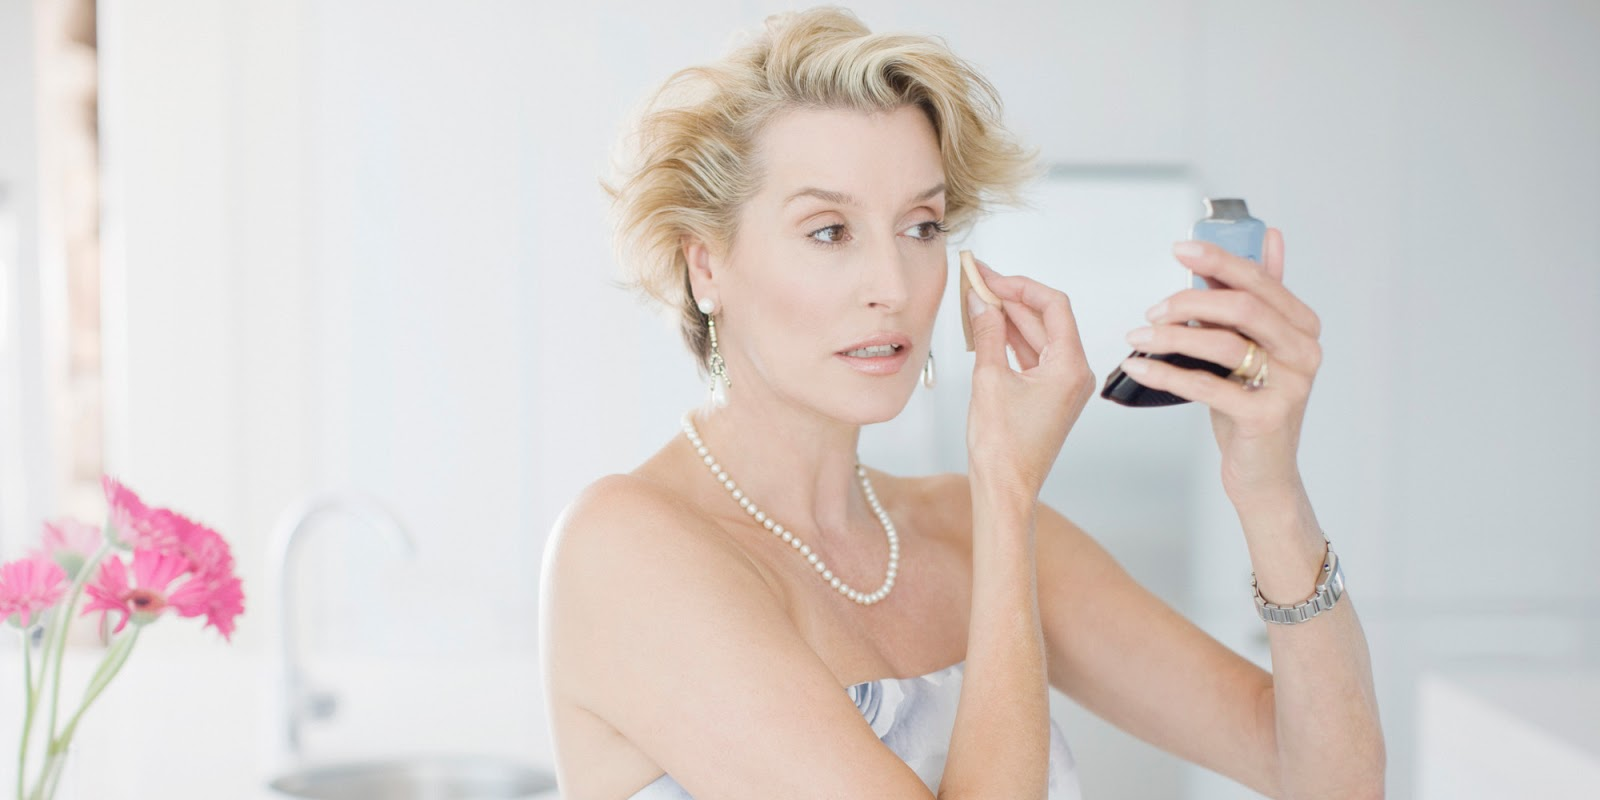 Beauty tips for over 50